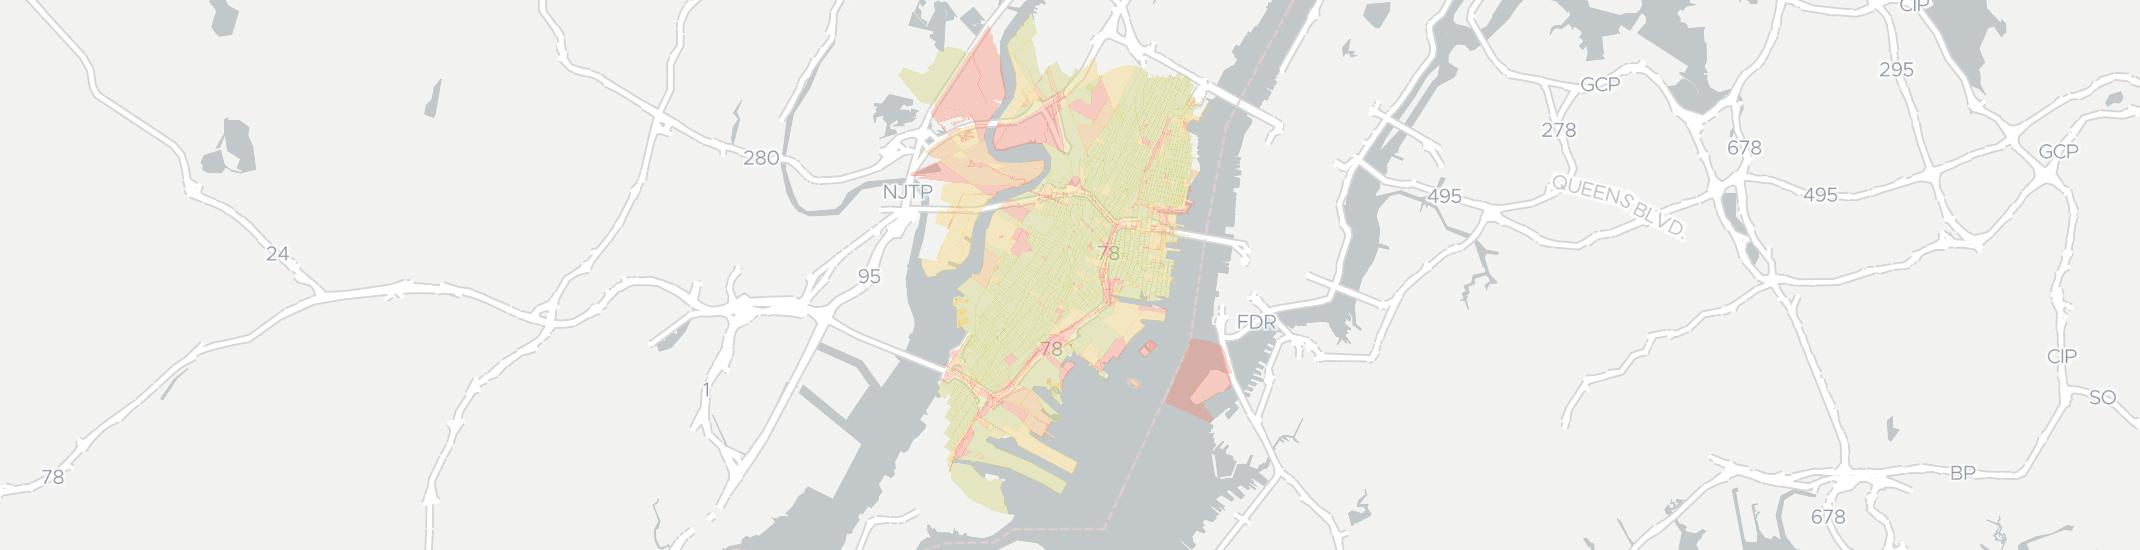 Jersey City Internet Competition Map. Click for interactive map.